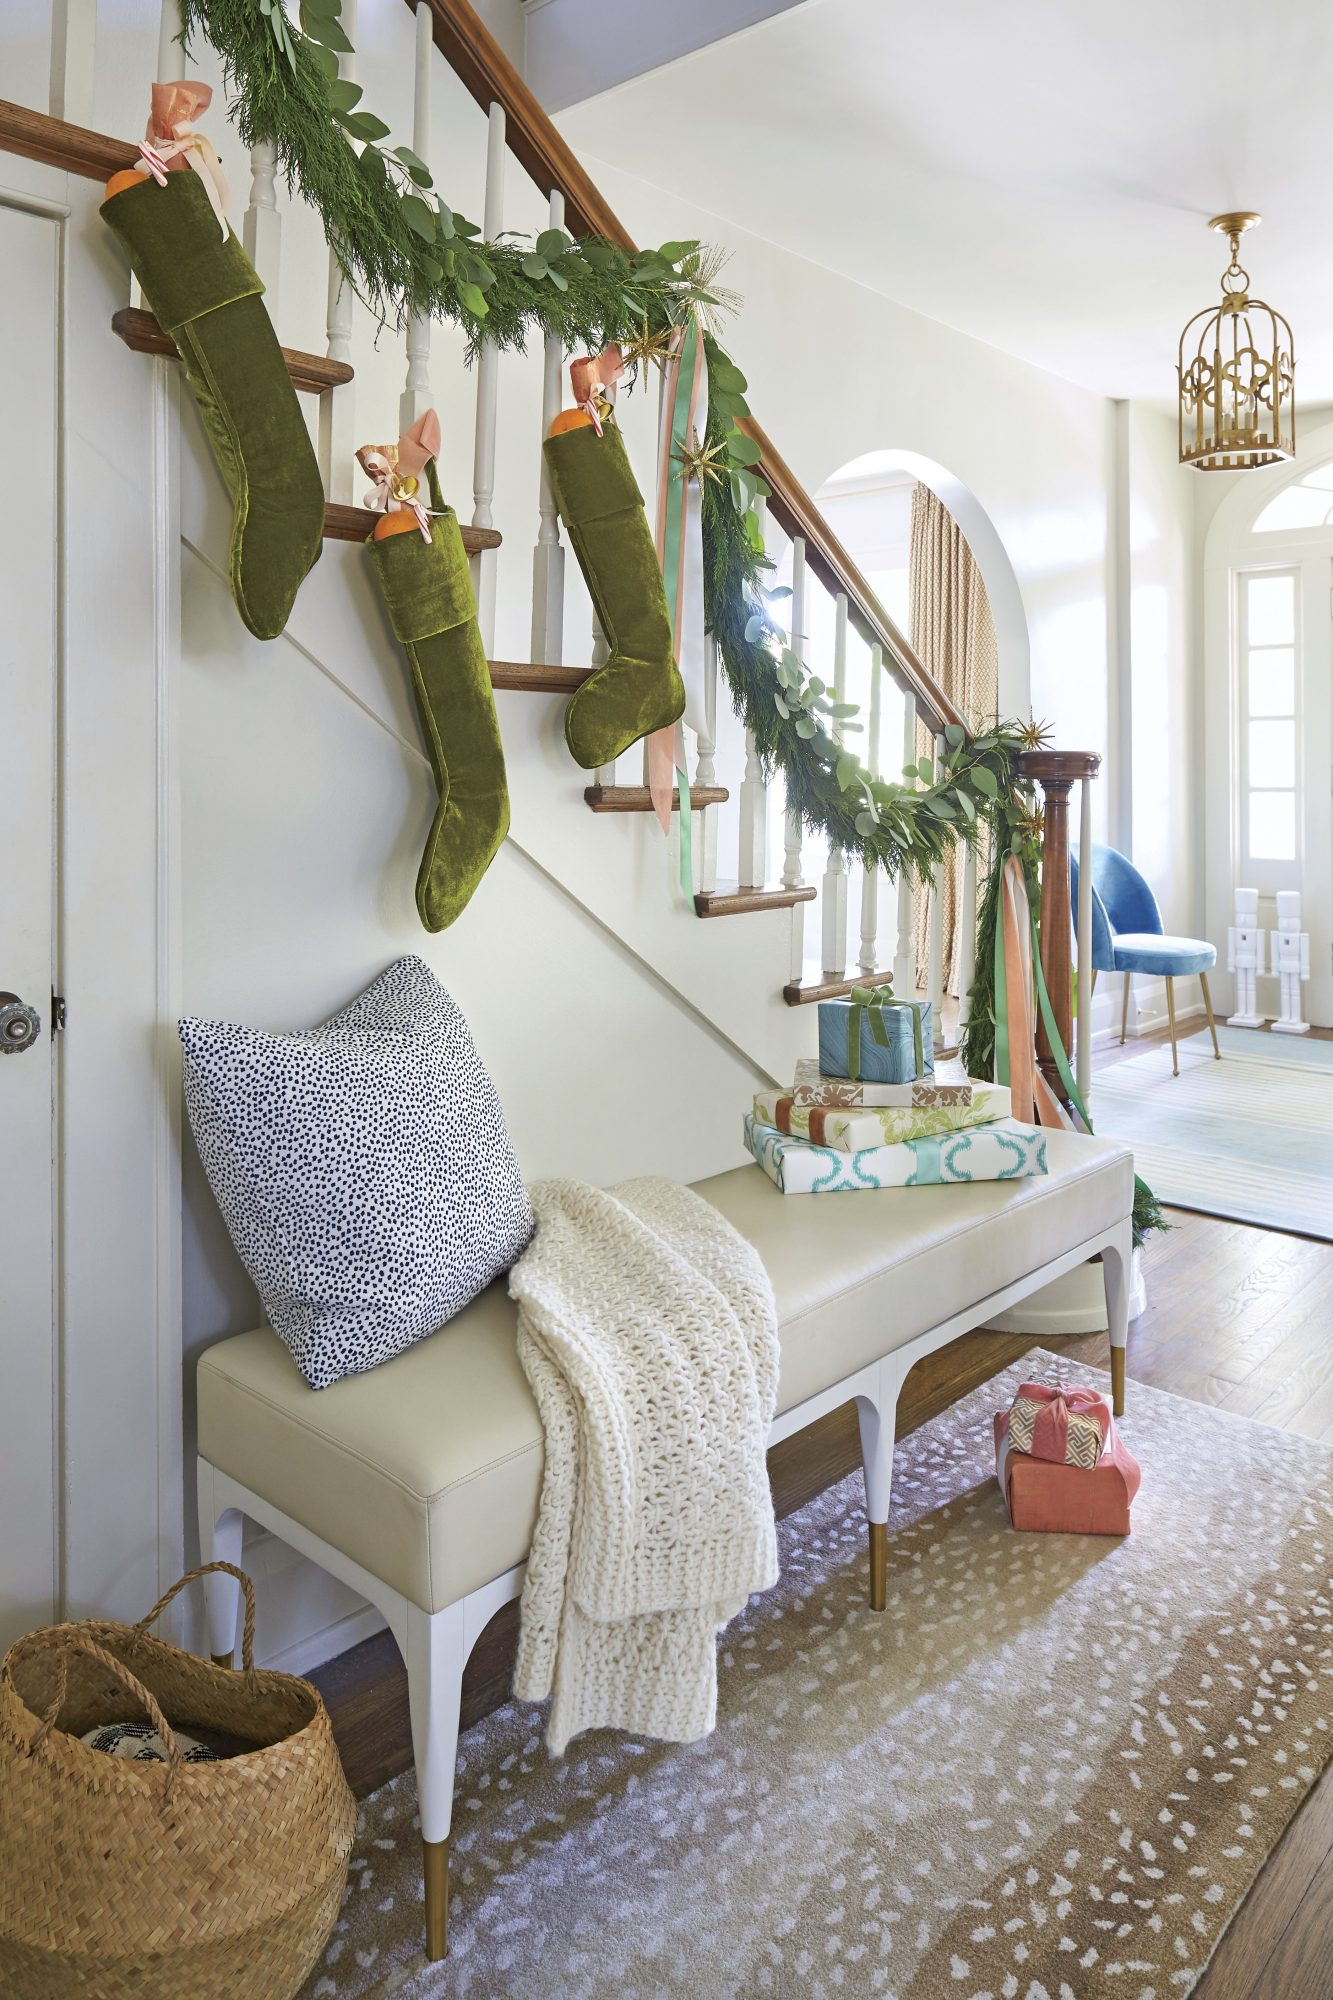 Stocking and Garland on Banister